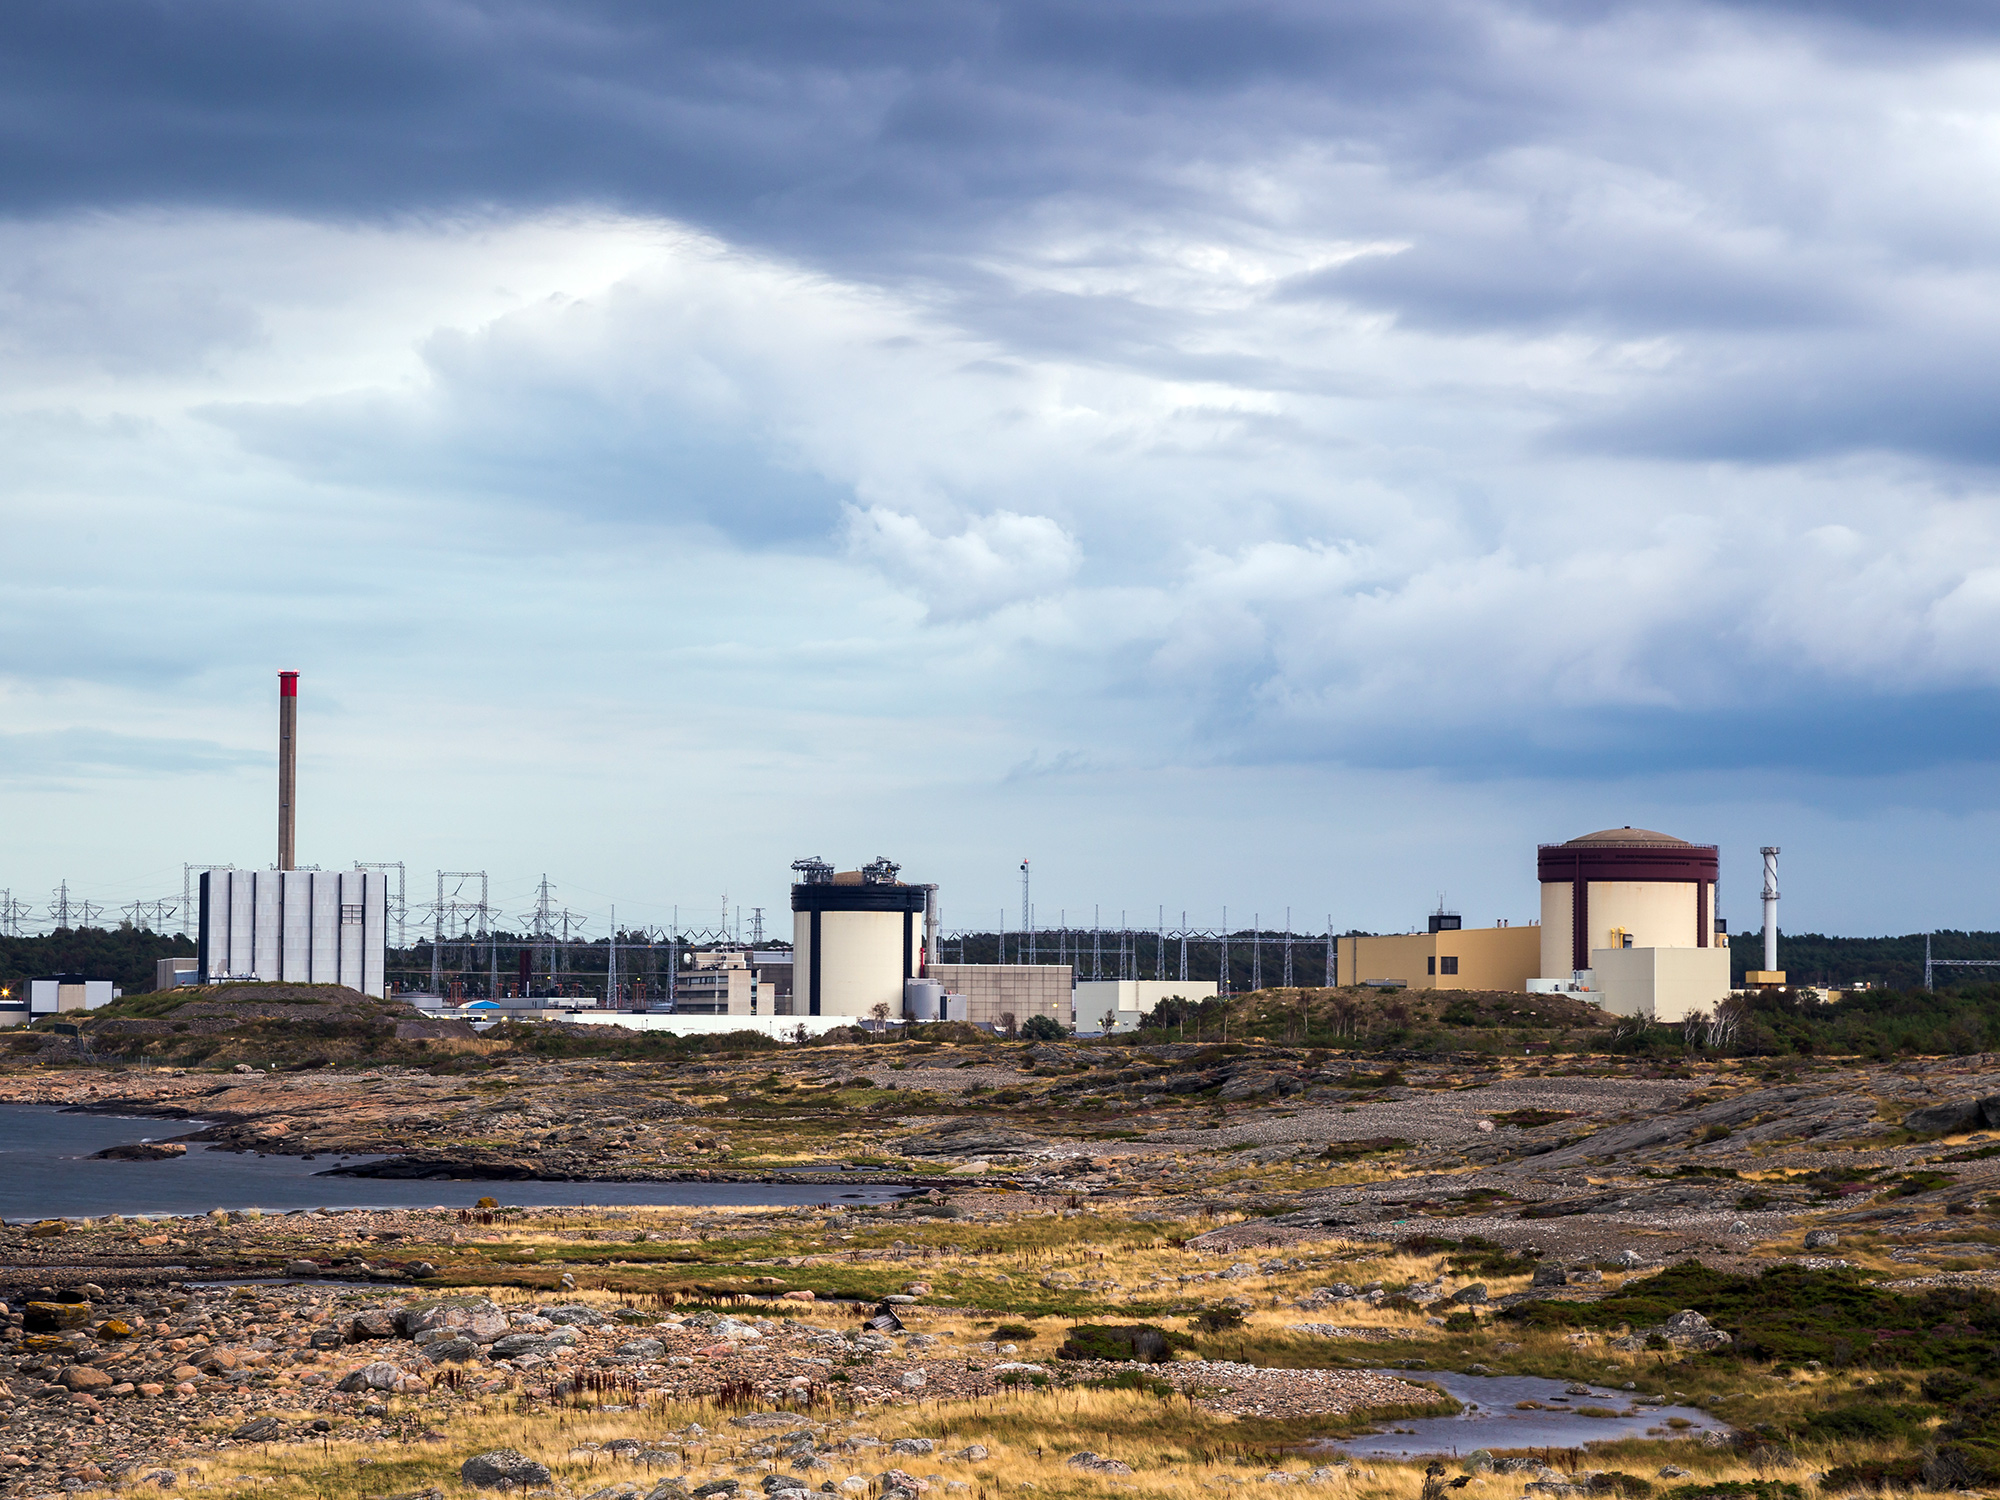 Ringhals Nuclear Power Plant Under Dramatic Sky